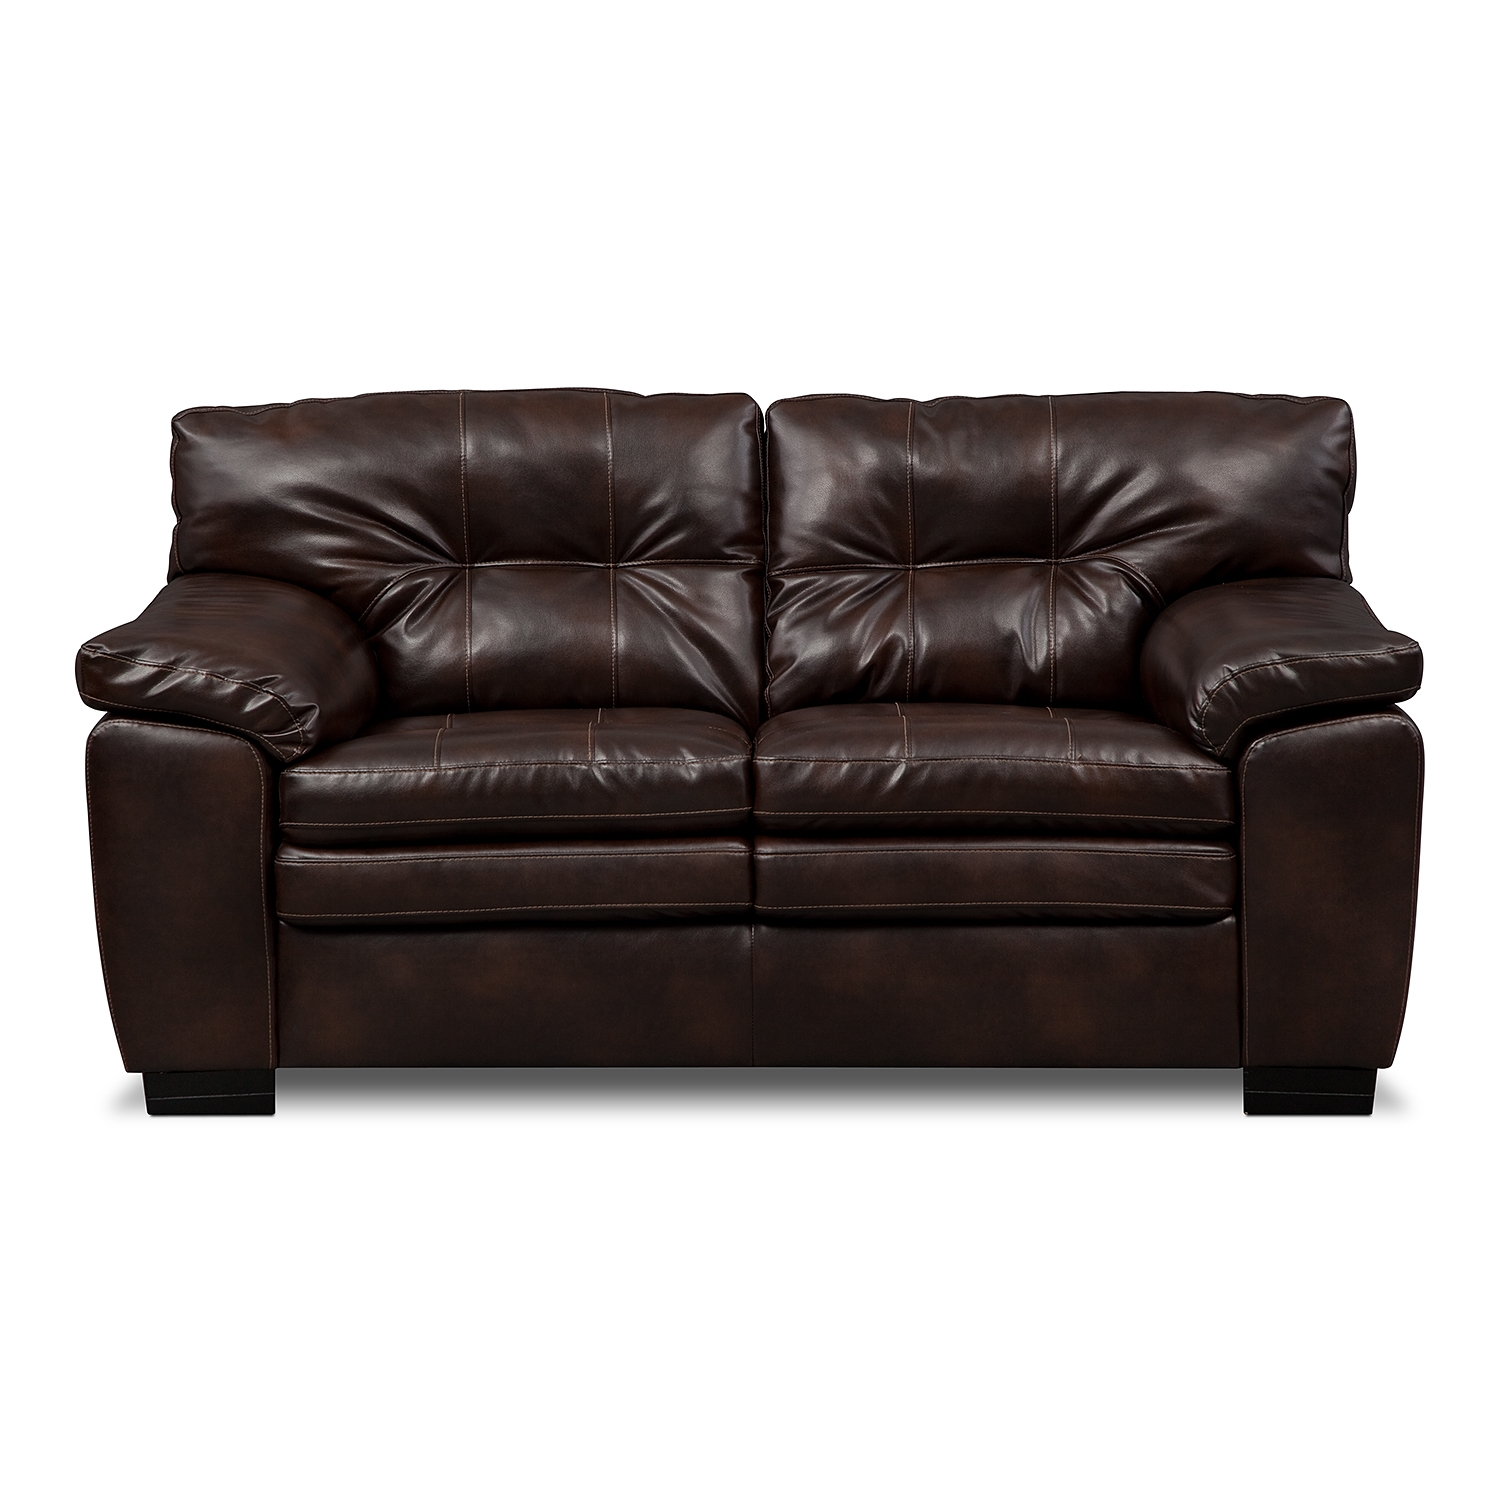 Convertible loveseat sofa bed with chaise couch sofa for Couch und sofa